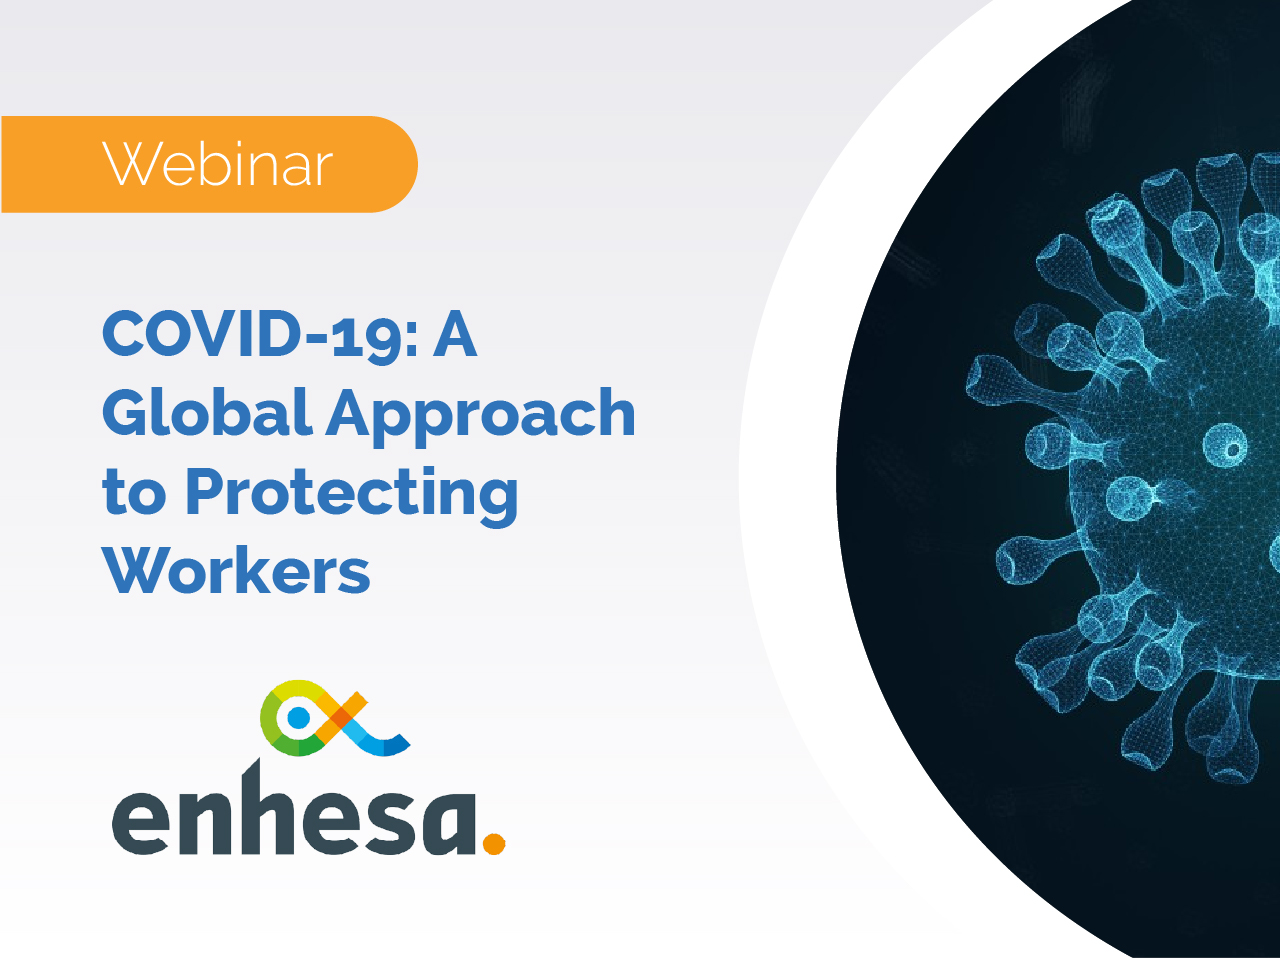 Webinar-_COVID-19-_A_Global_Approach_to_Protecting_Workers